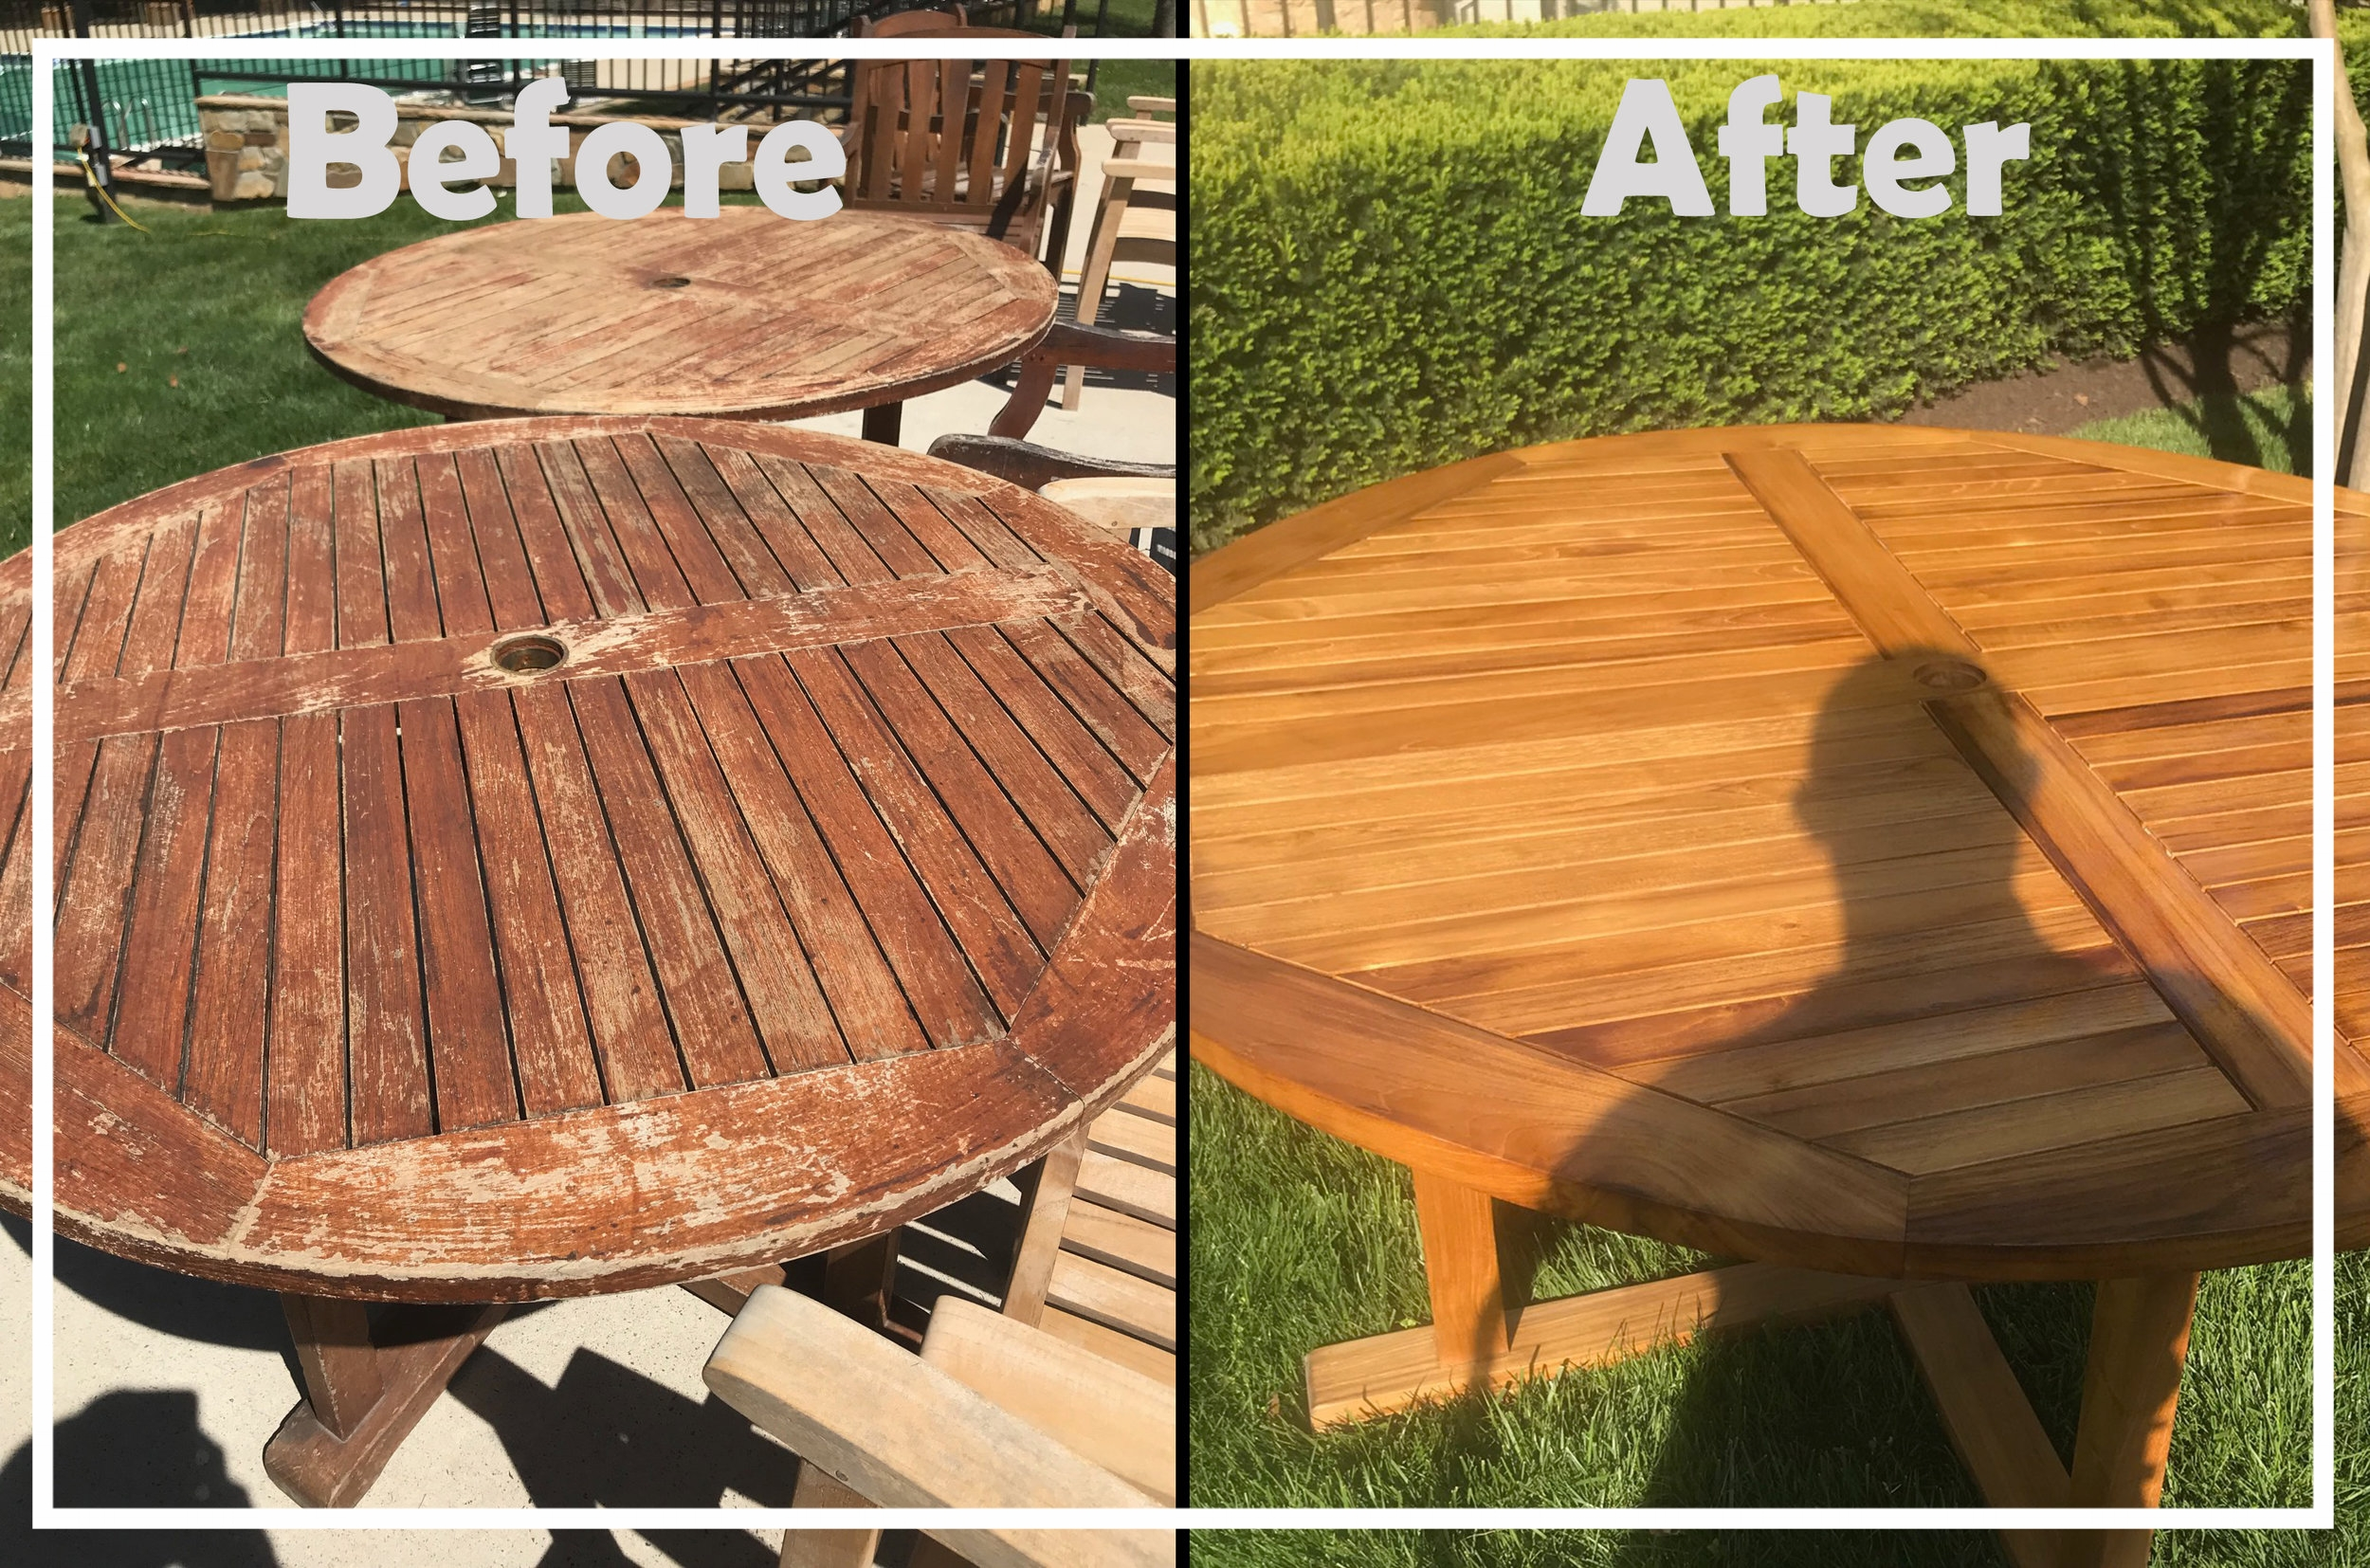 Even a table can take on a whole new look with professional care.